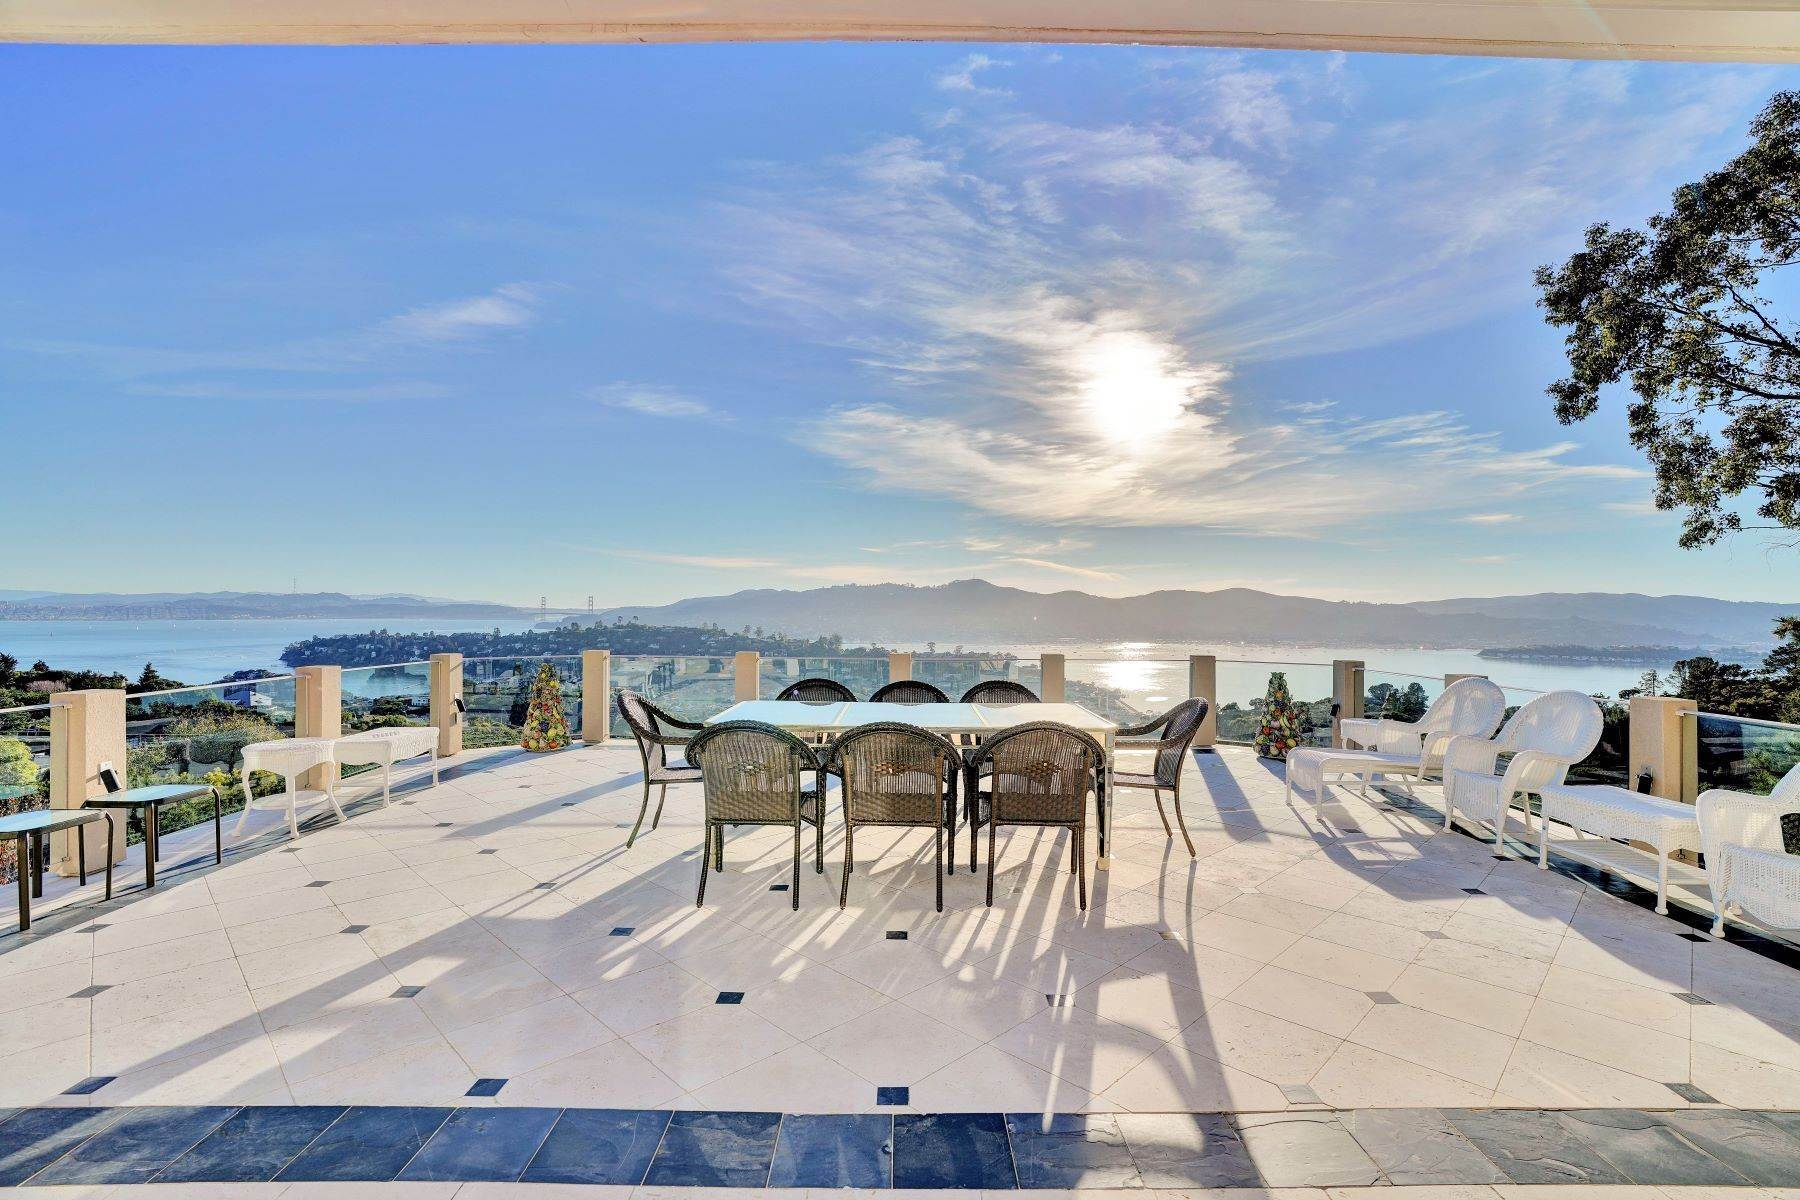 Single Family Homes for Sale at Gated Estate With Stunning Views! 10 Venado Drive Tiburon, California 94920 United States